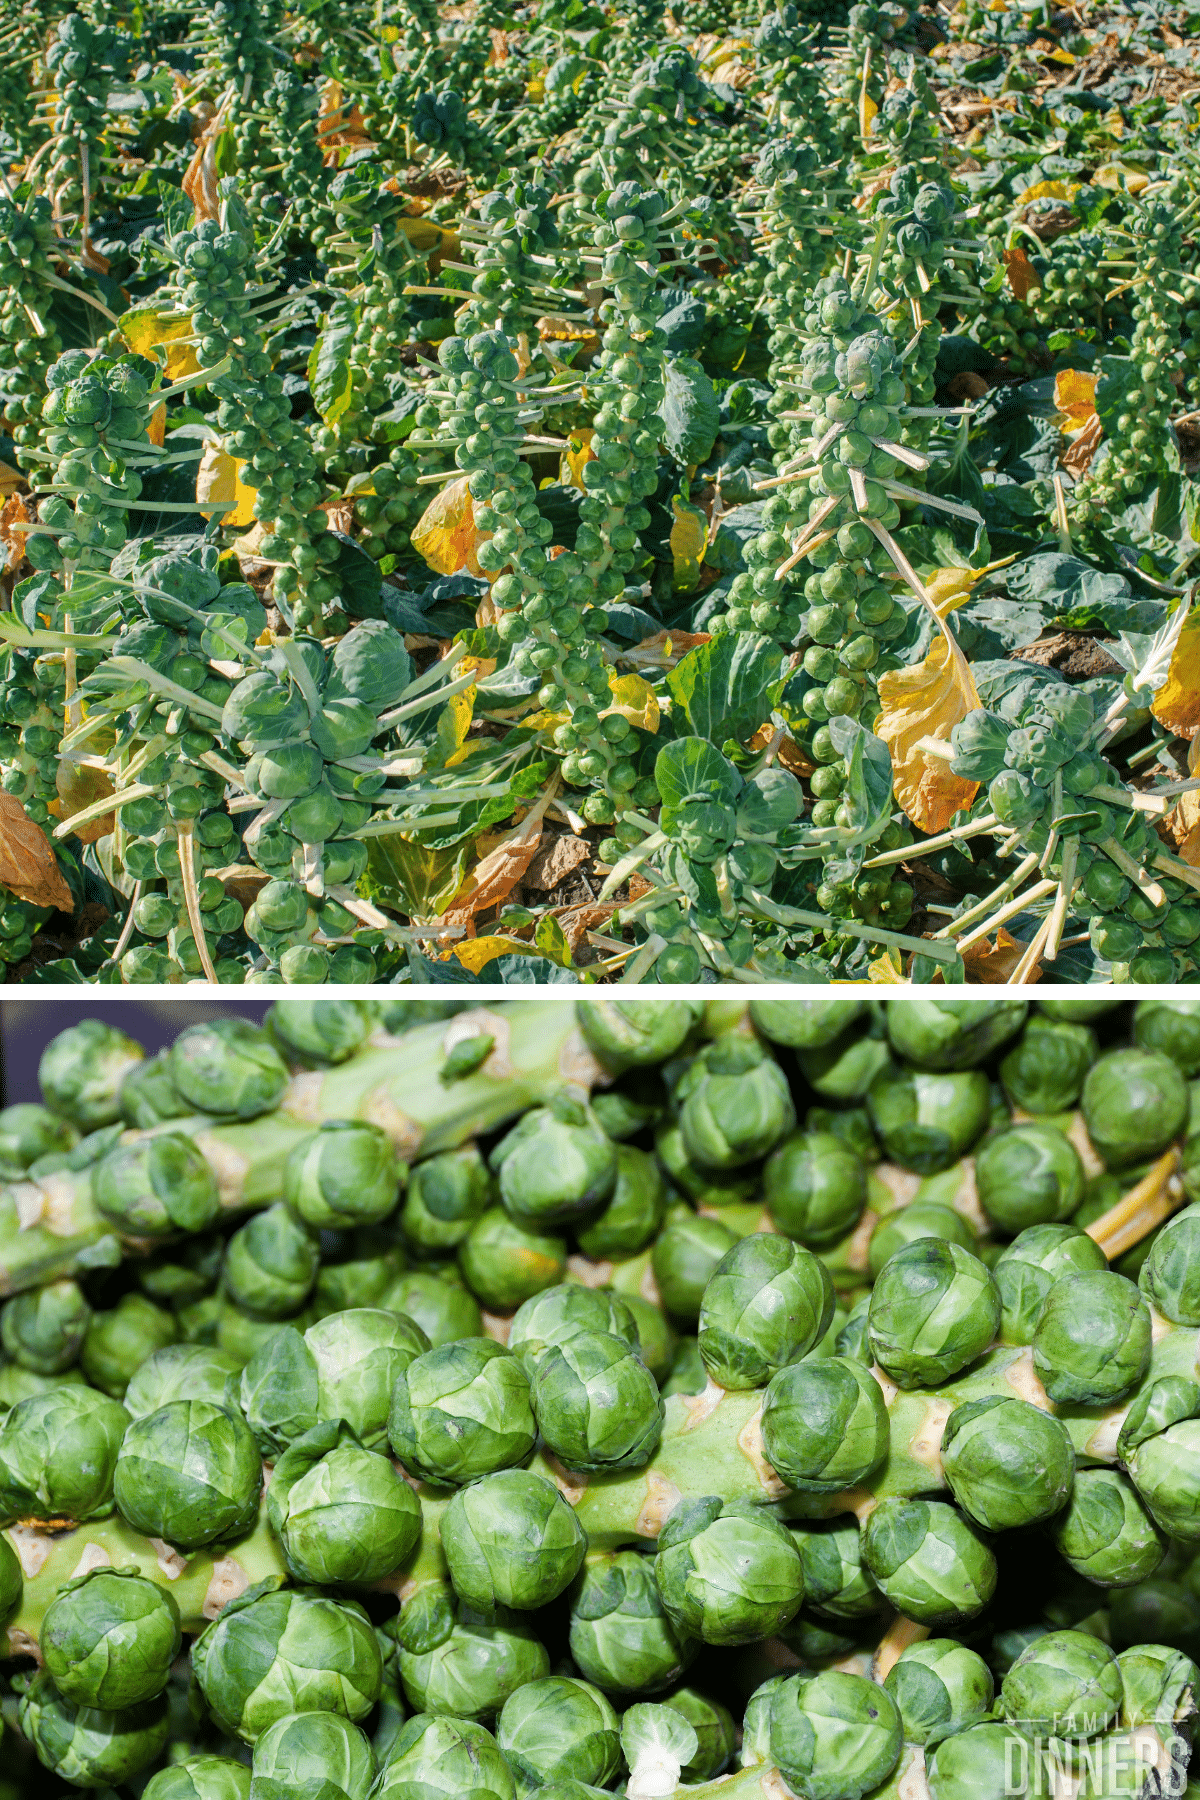 brussels sprouts in field on stalk